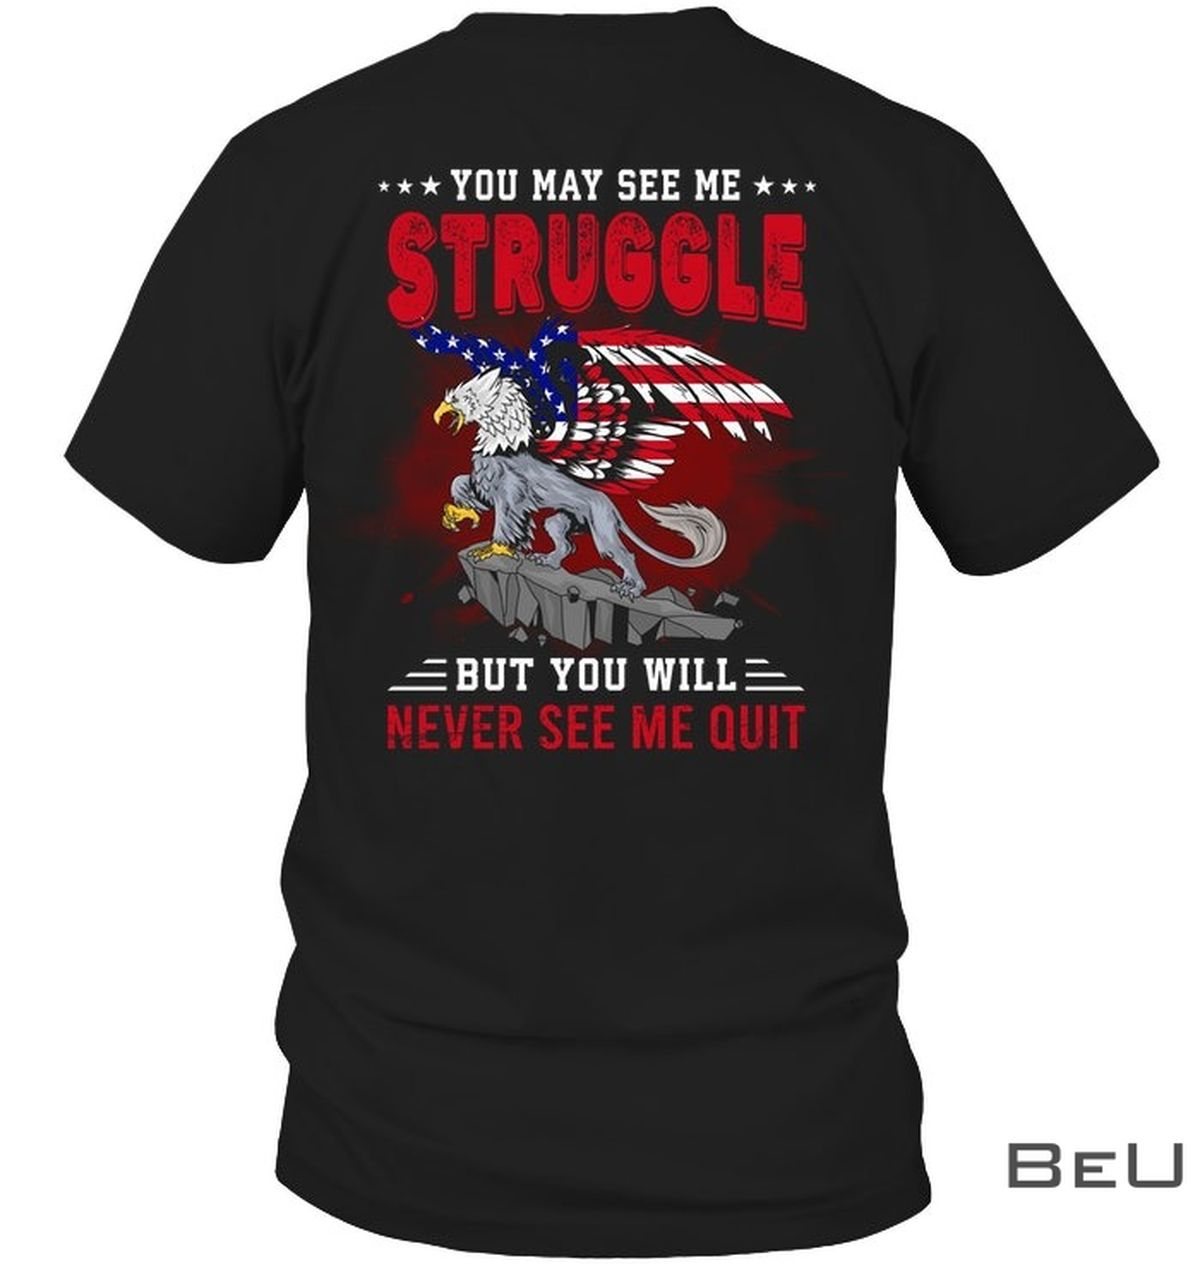 You May See Me Struggle But You Will Never See Me Quit Shirt c